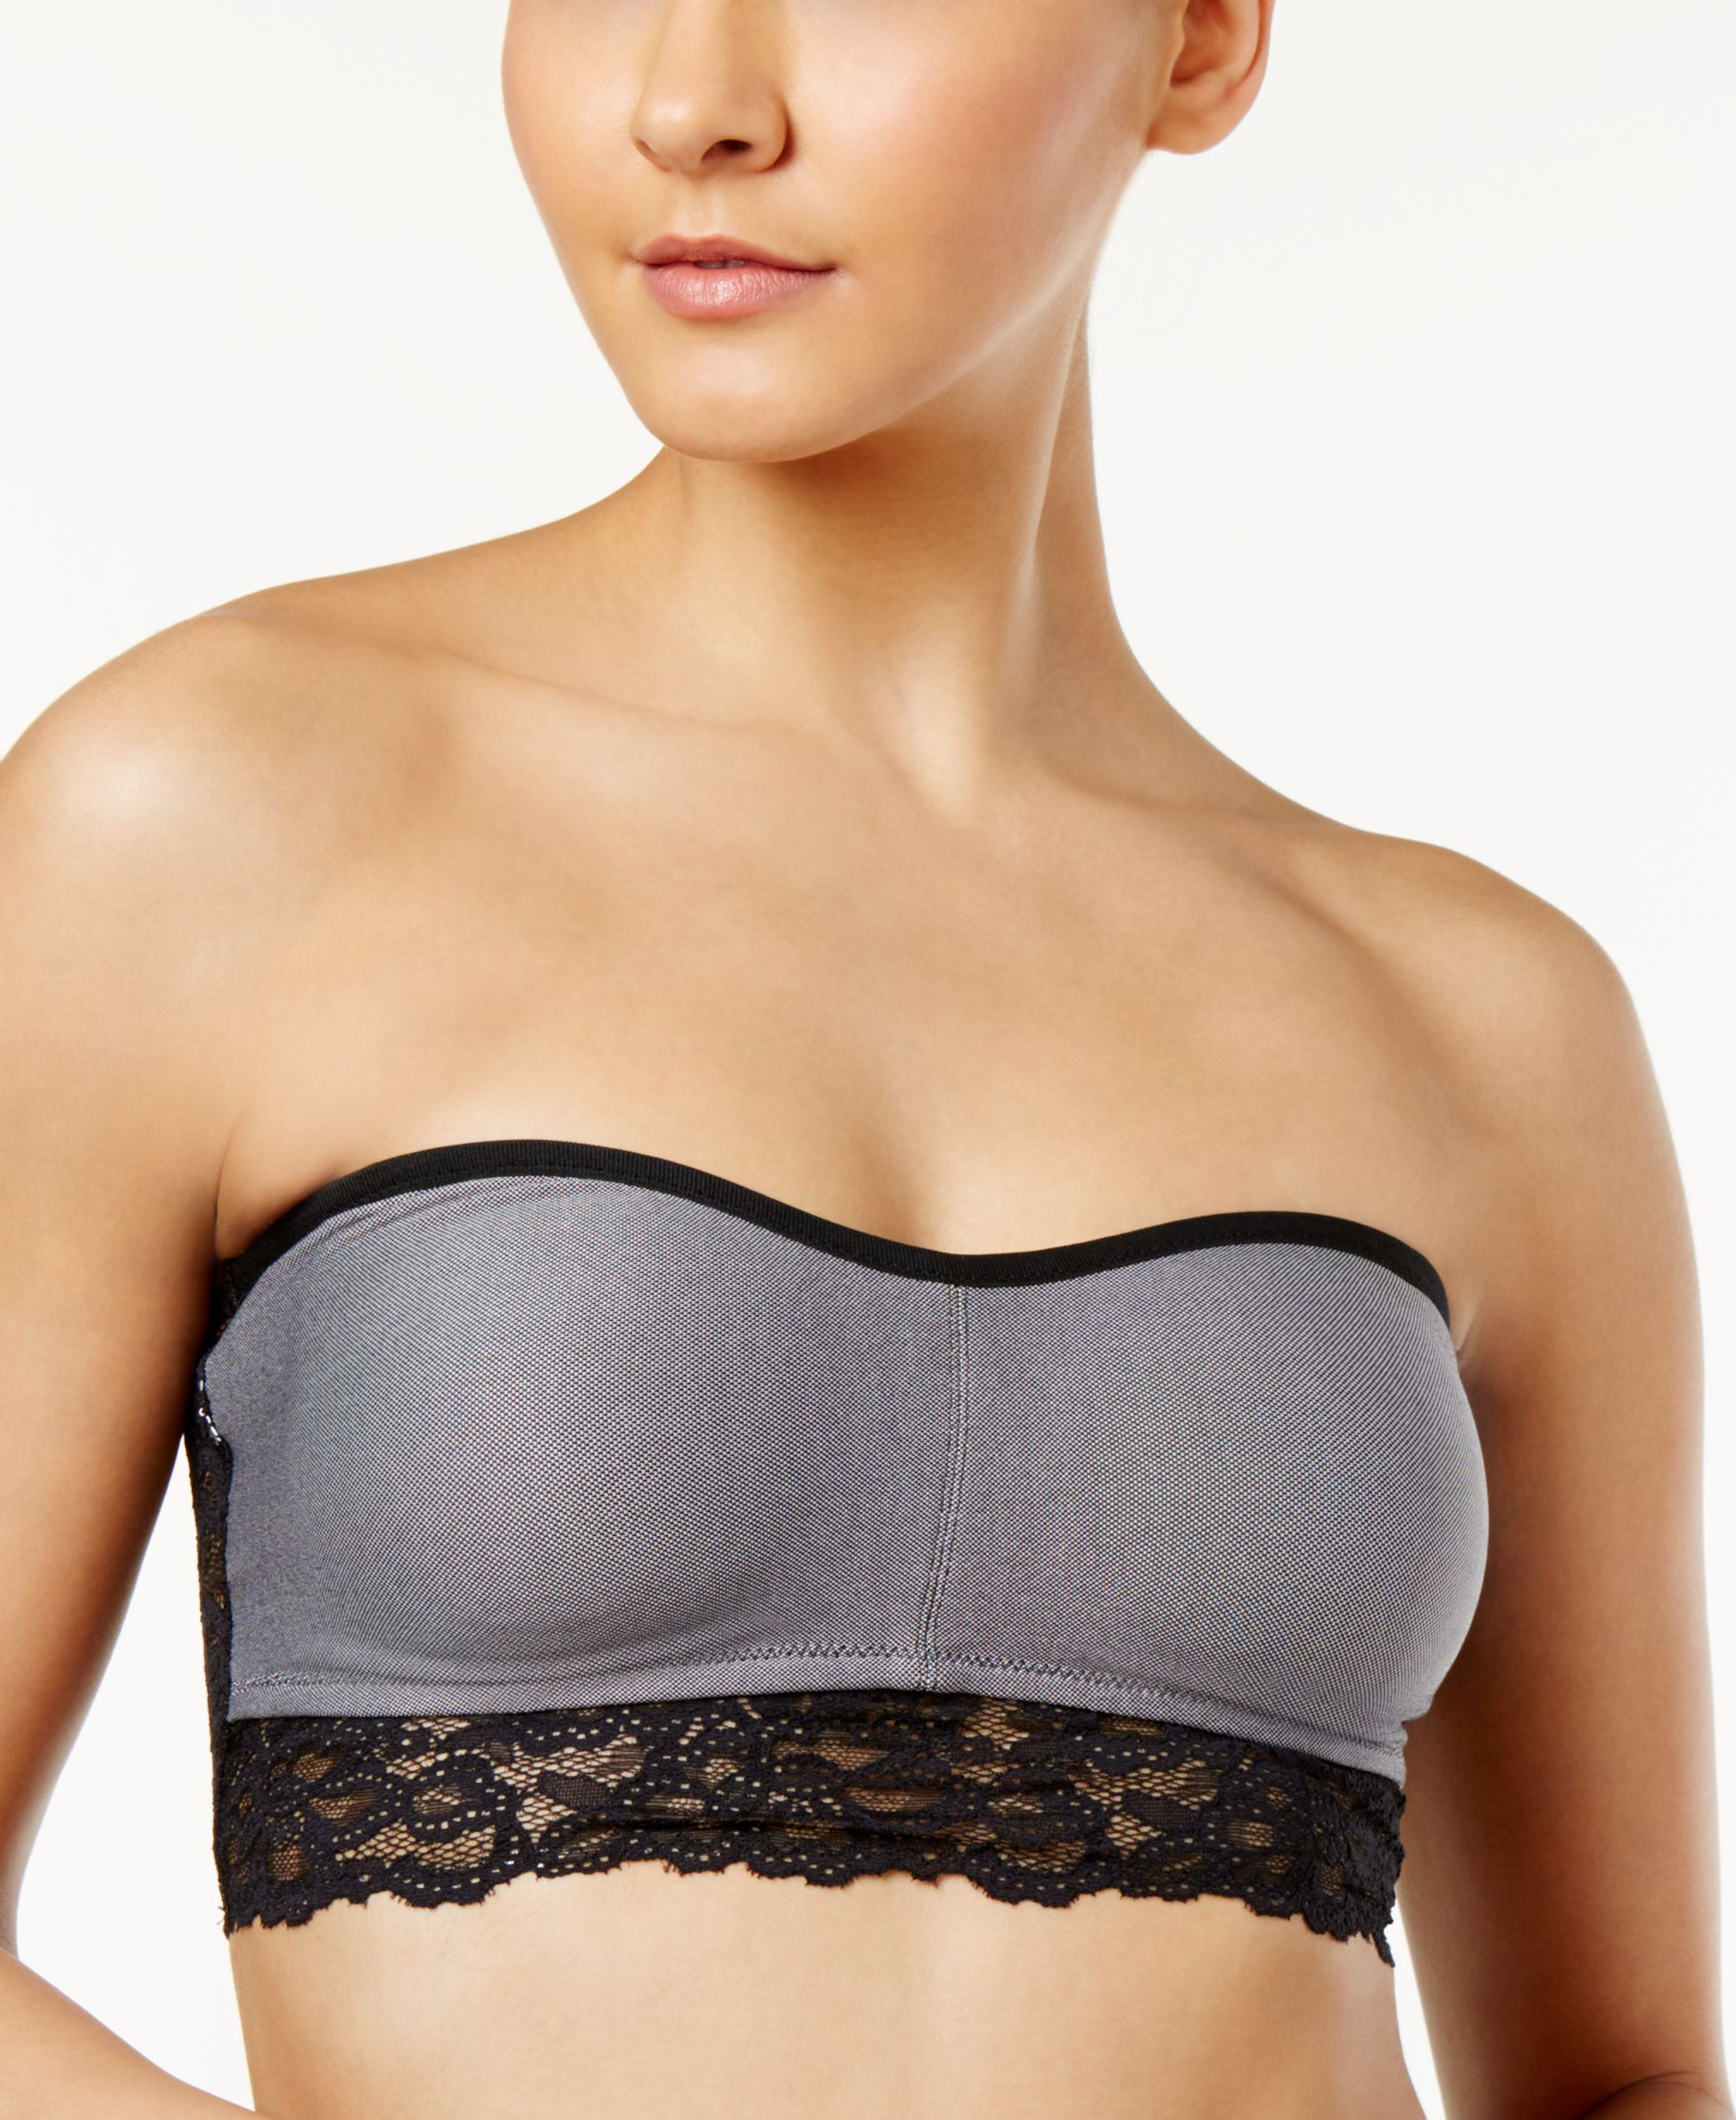 db50999705d02 b.tempt d by Wacoal b. Charming Sheer Lace Bandeau 910232